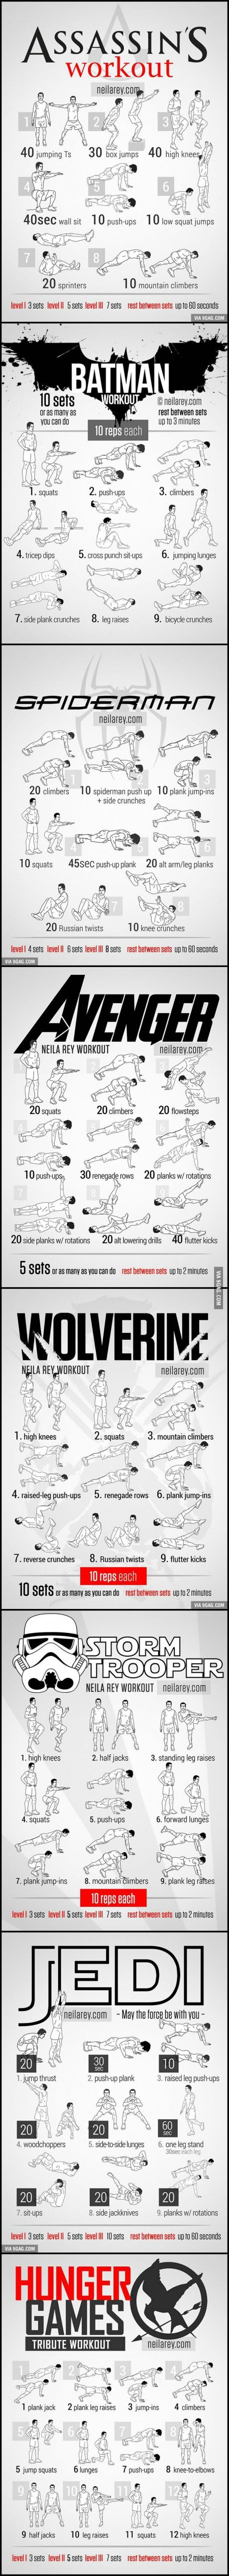 Workout-for-Assassin-Batman-Spiderman-Avenger-Wolv